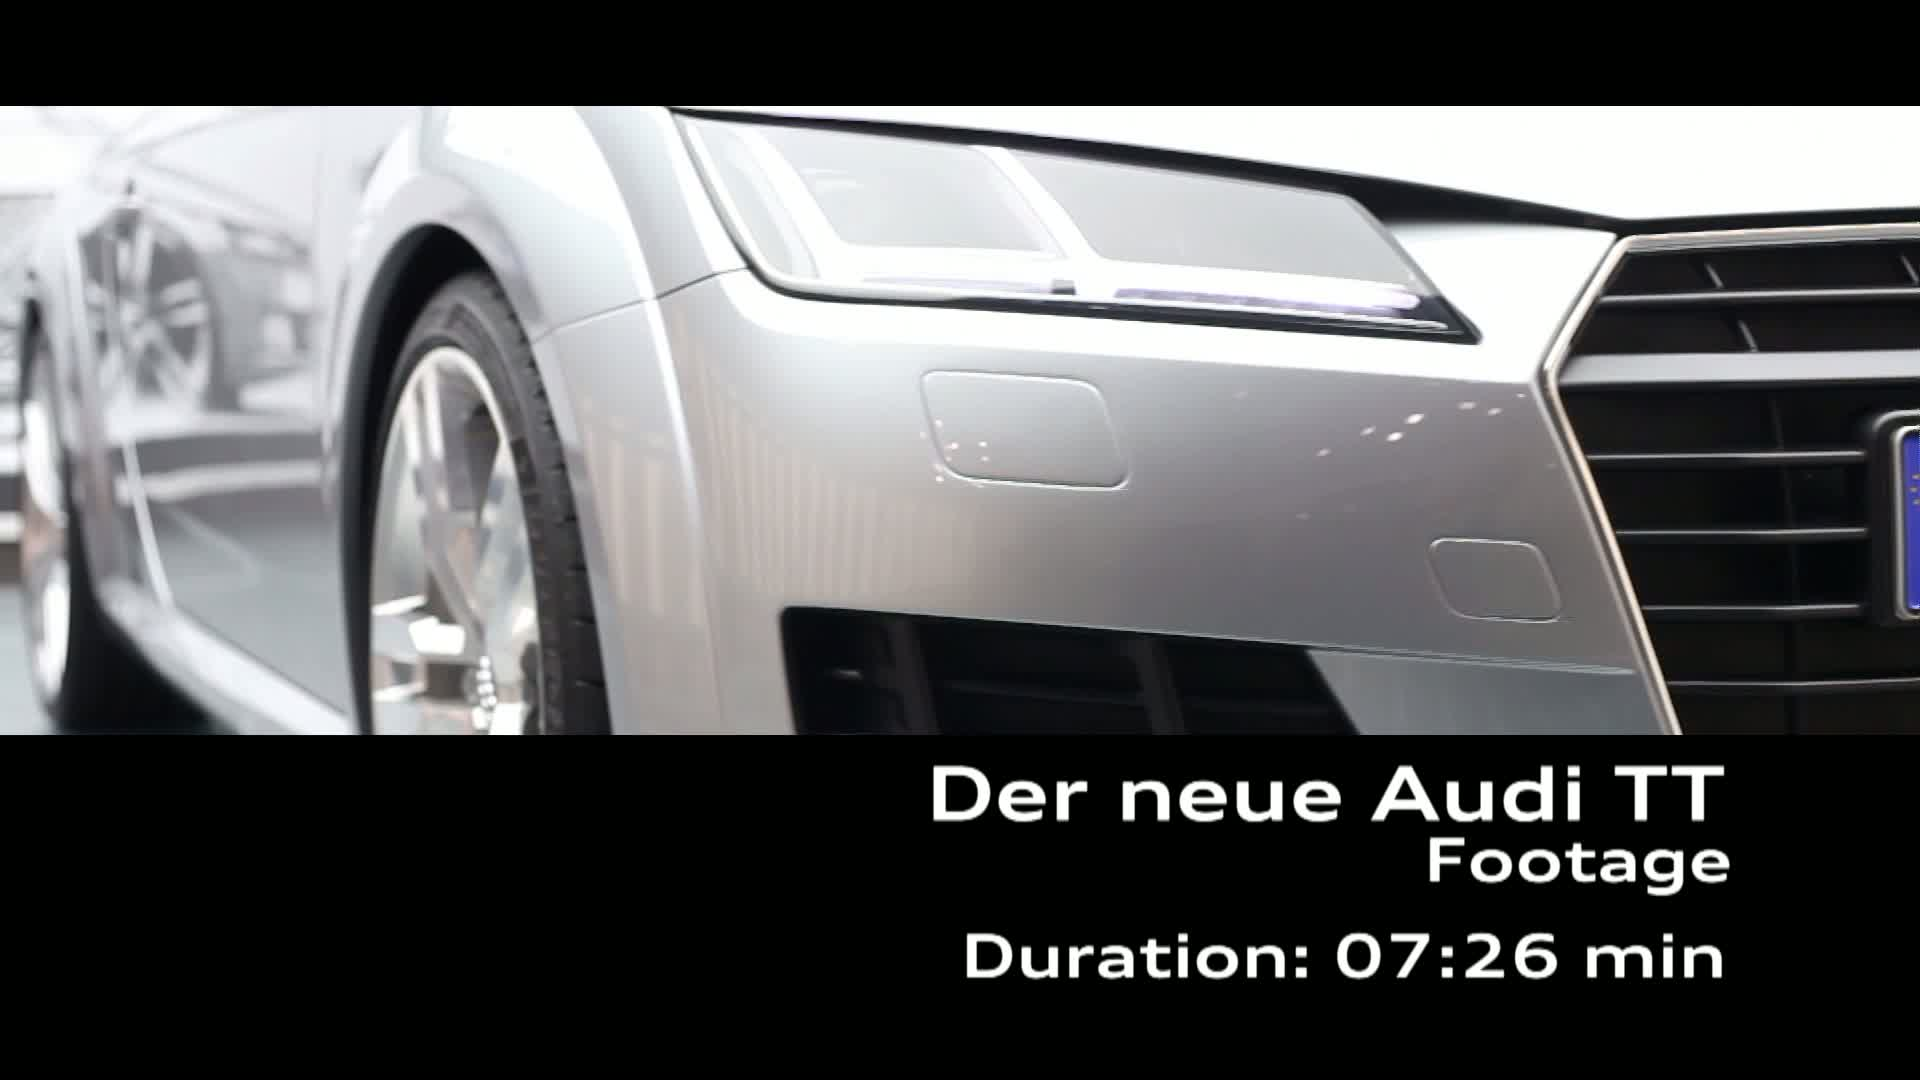 Audi TT Coupé and Audi TTS Coupé Design - Footage